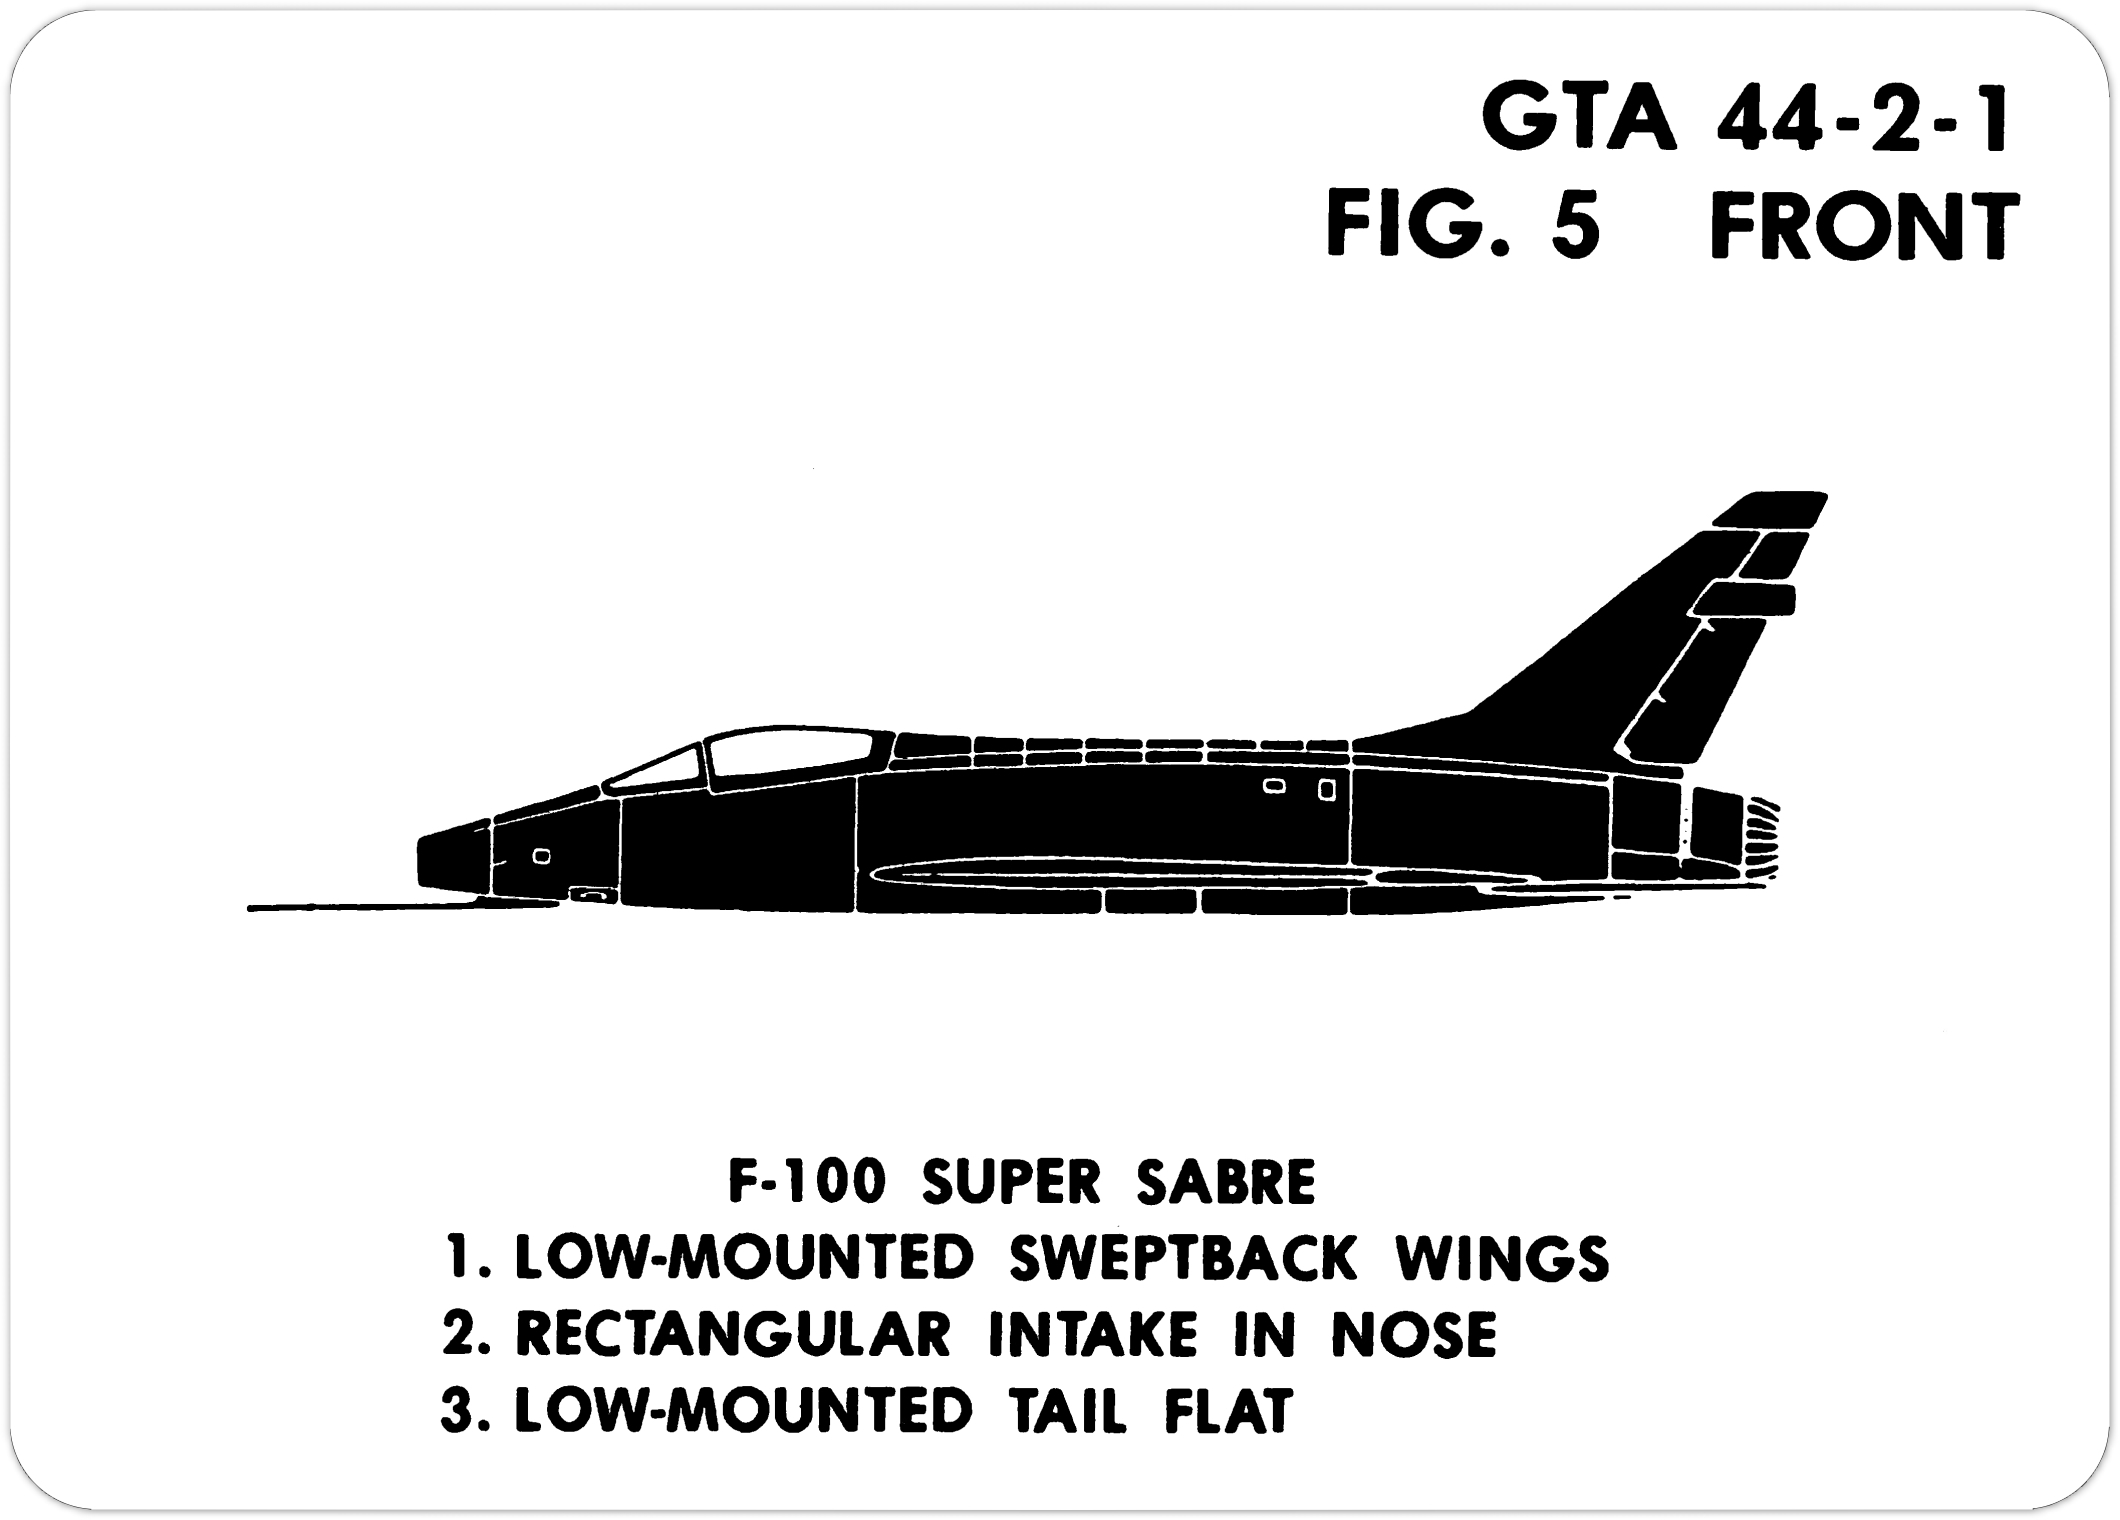 Visual Aircraft Recognition Hq Department Of The Army Gta 44 2 1